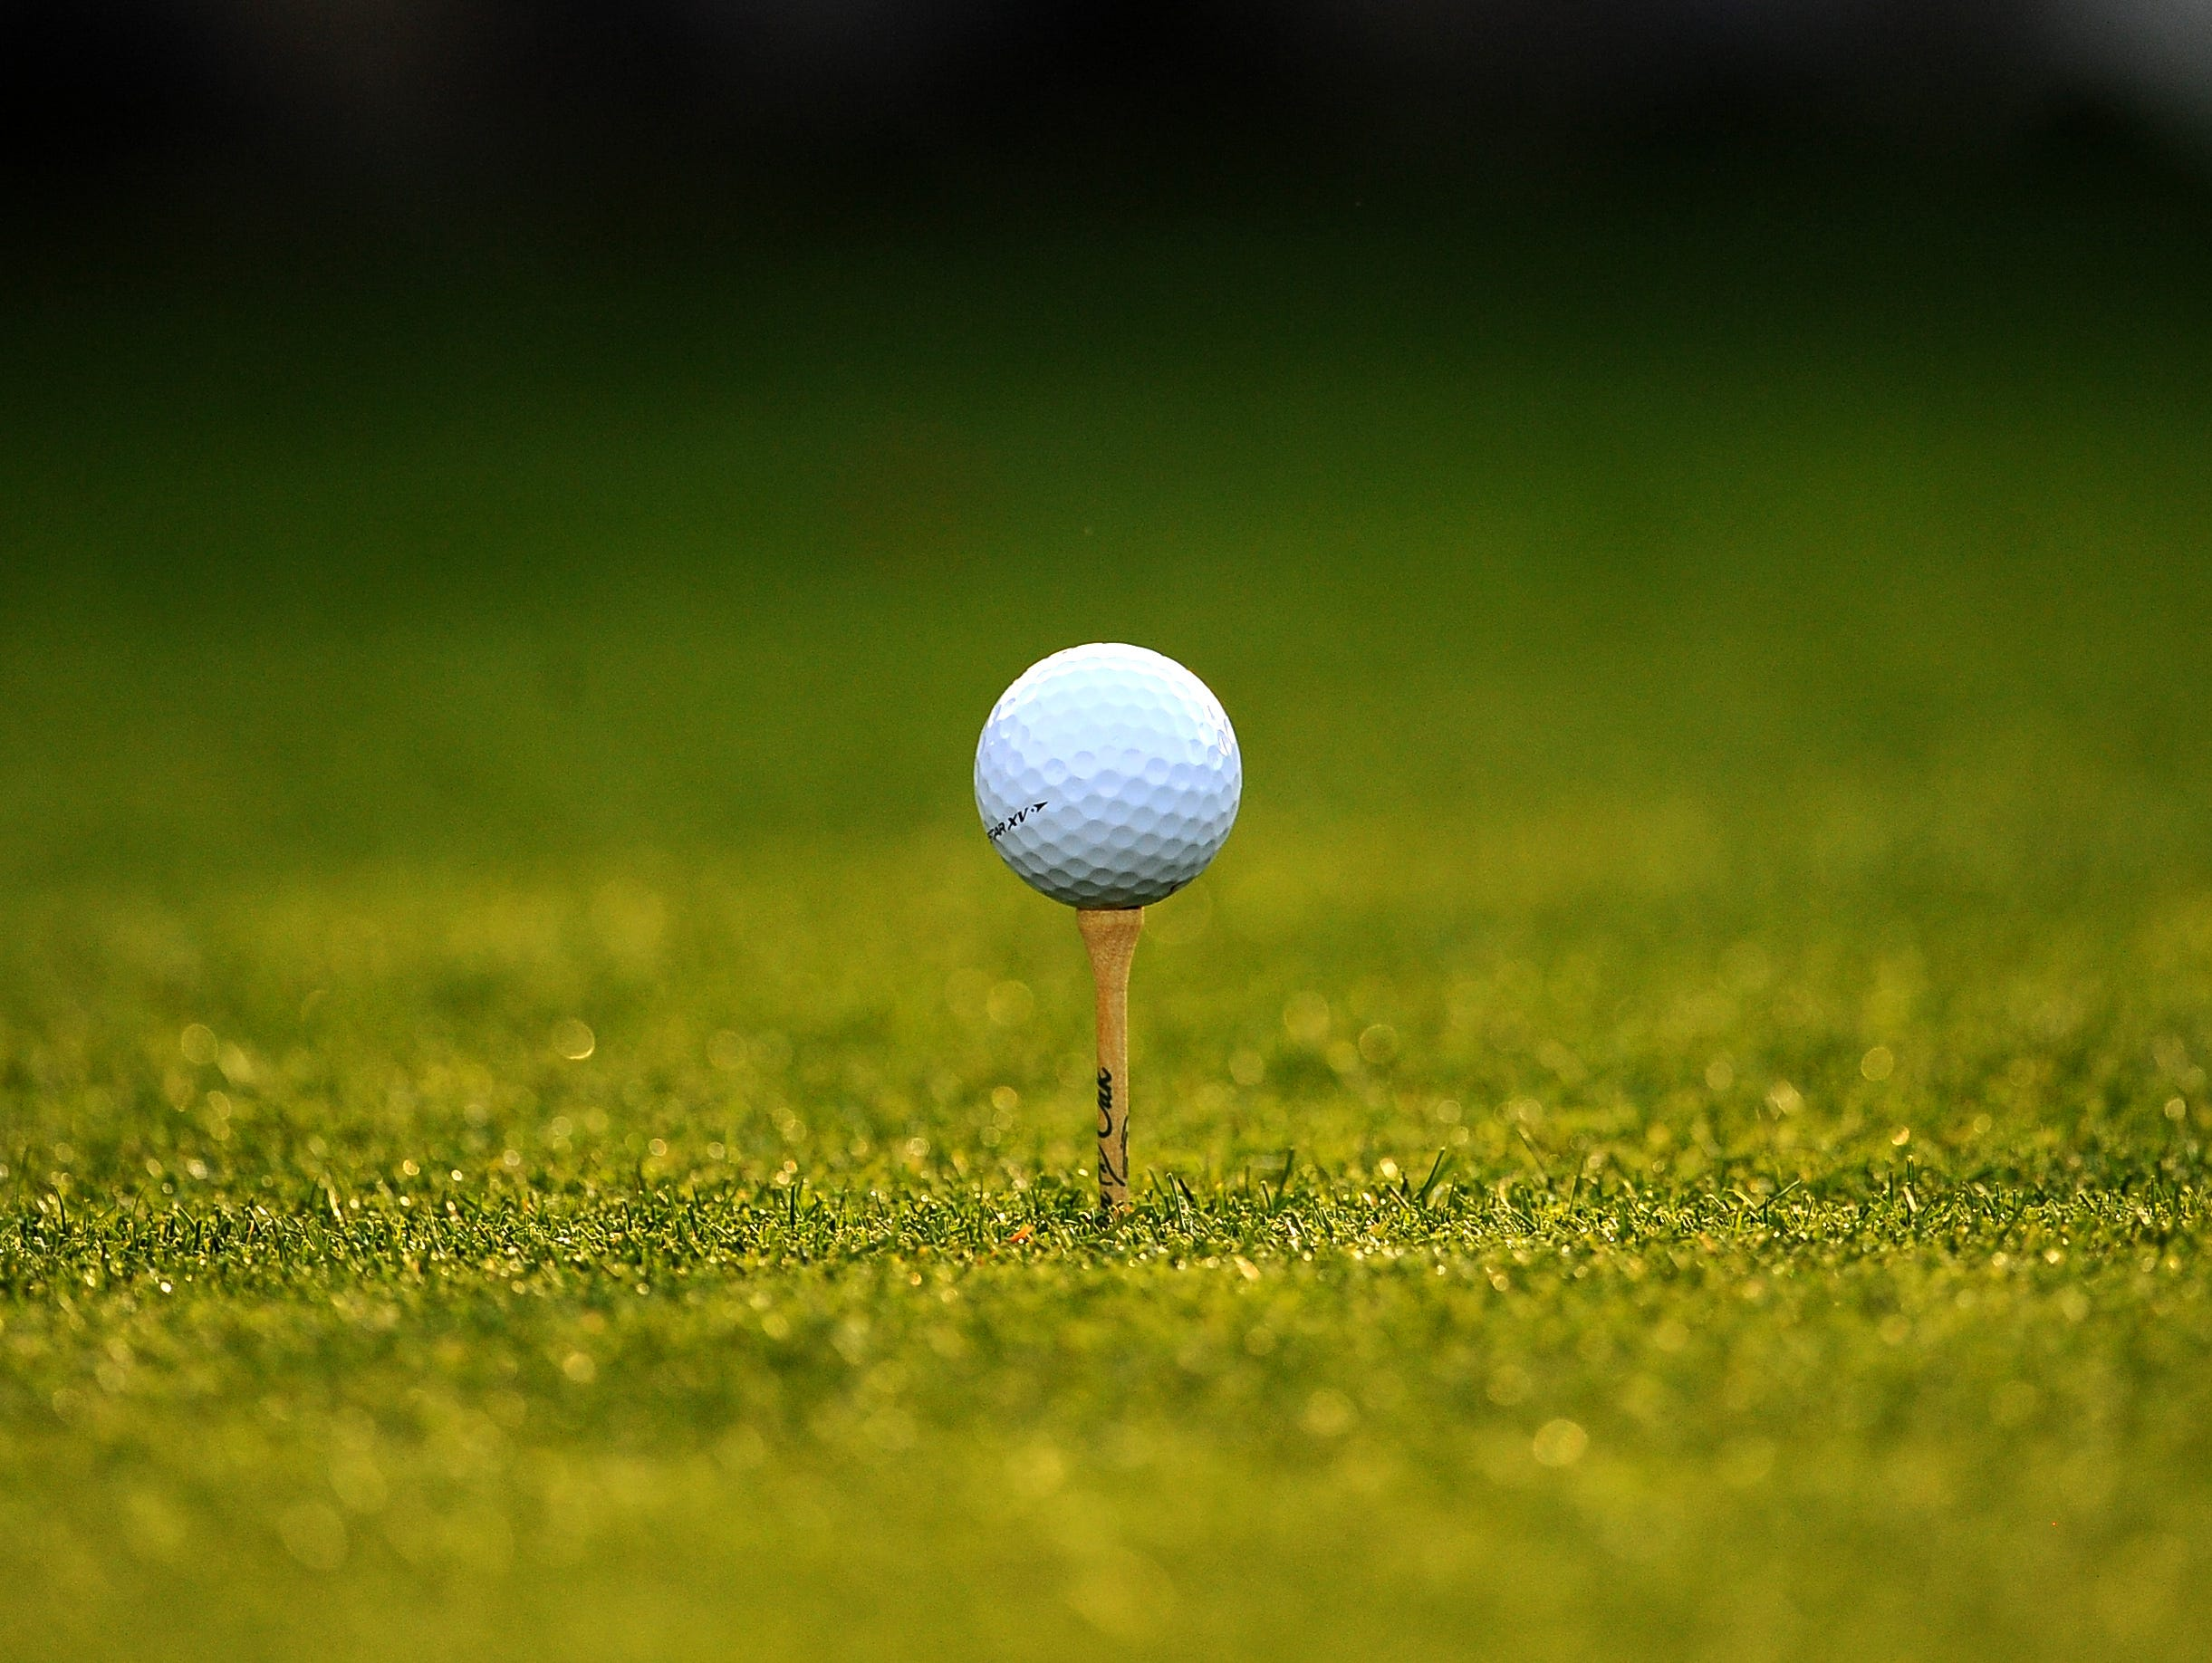 Harrison Yu fired a 4-over 40 Friday to lead the Desert Christian boys golf team to 244-288 league victory over Lutheran High School of Laverne.